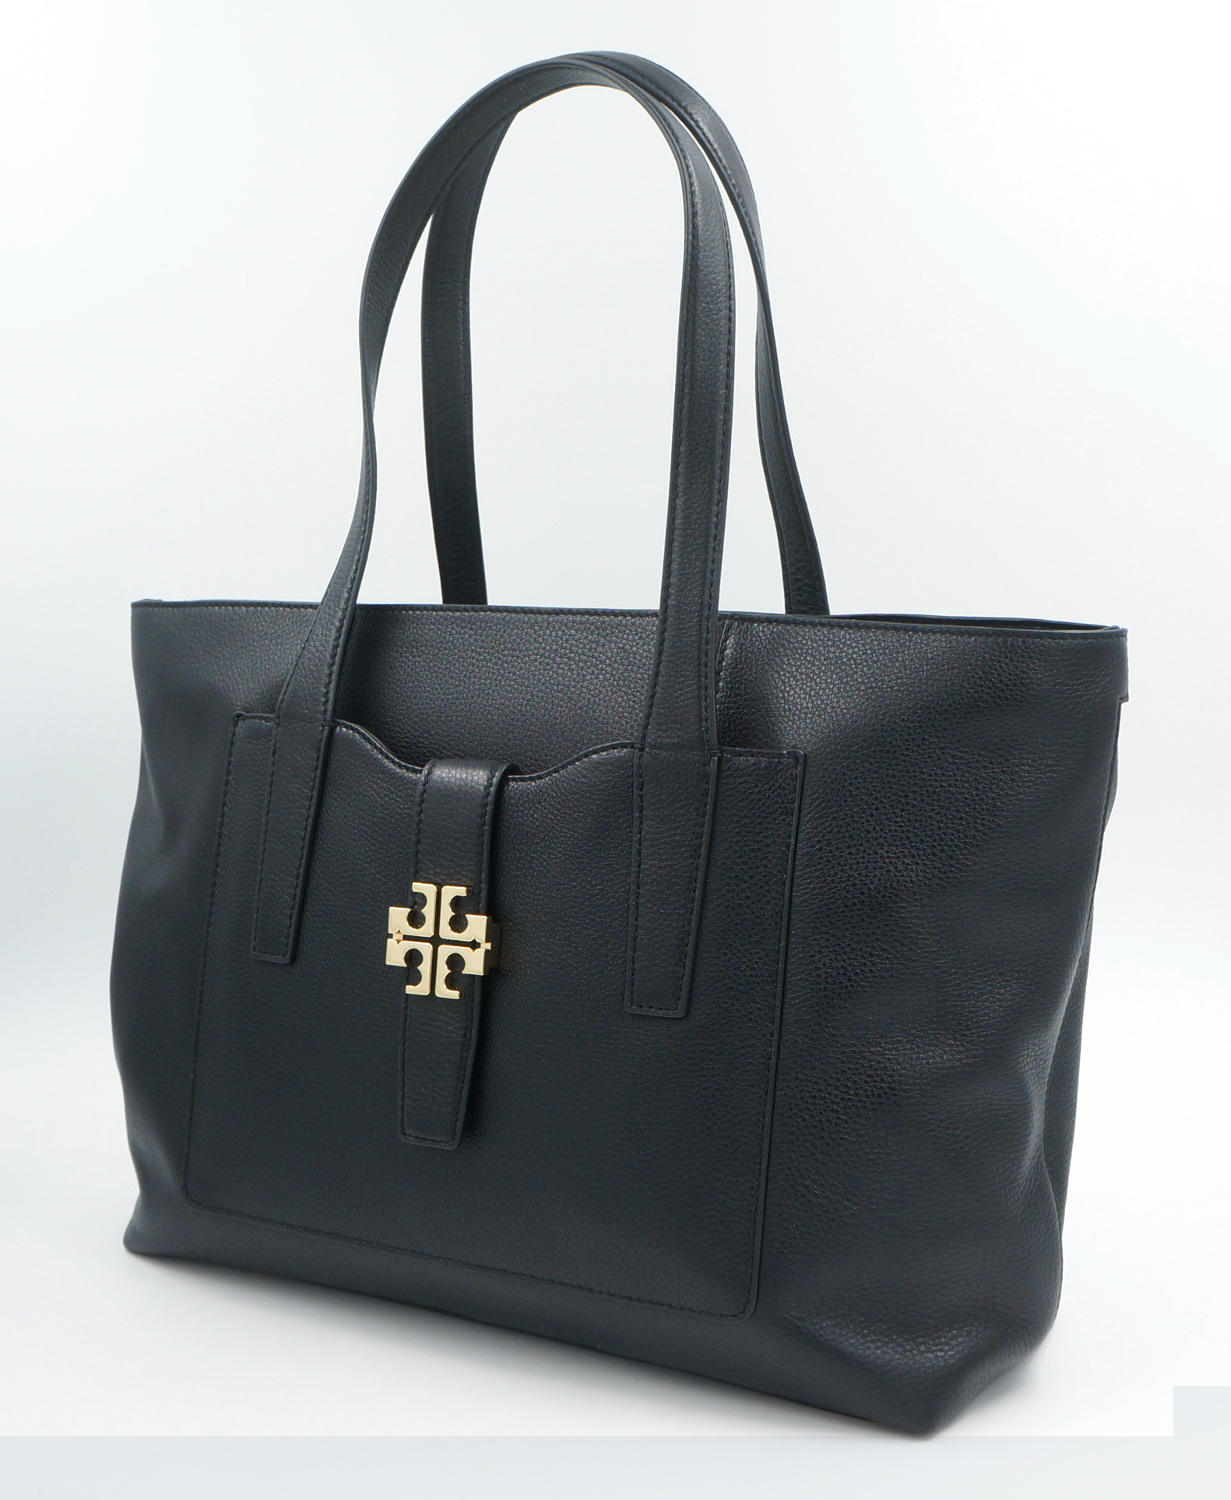 tory burch tasche handtasche leder schwarz uvp. Black Bedroom Furniture Sets. Home Design Ideas